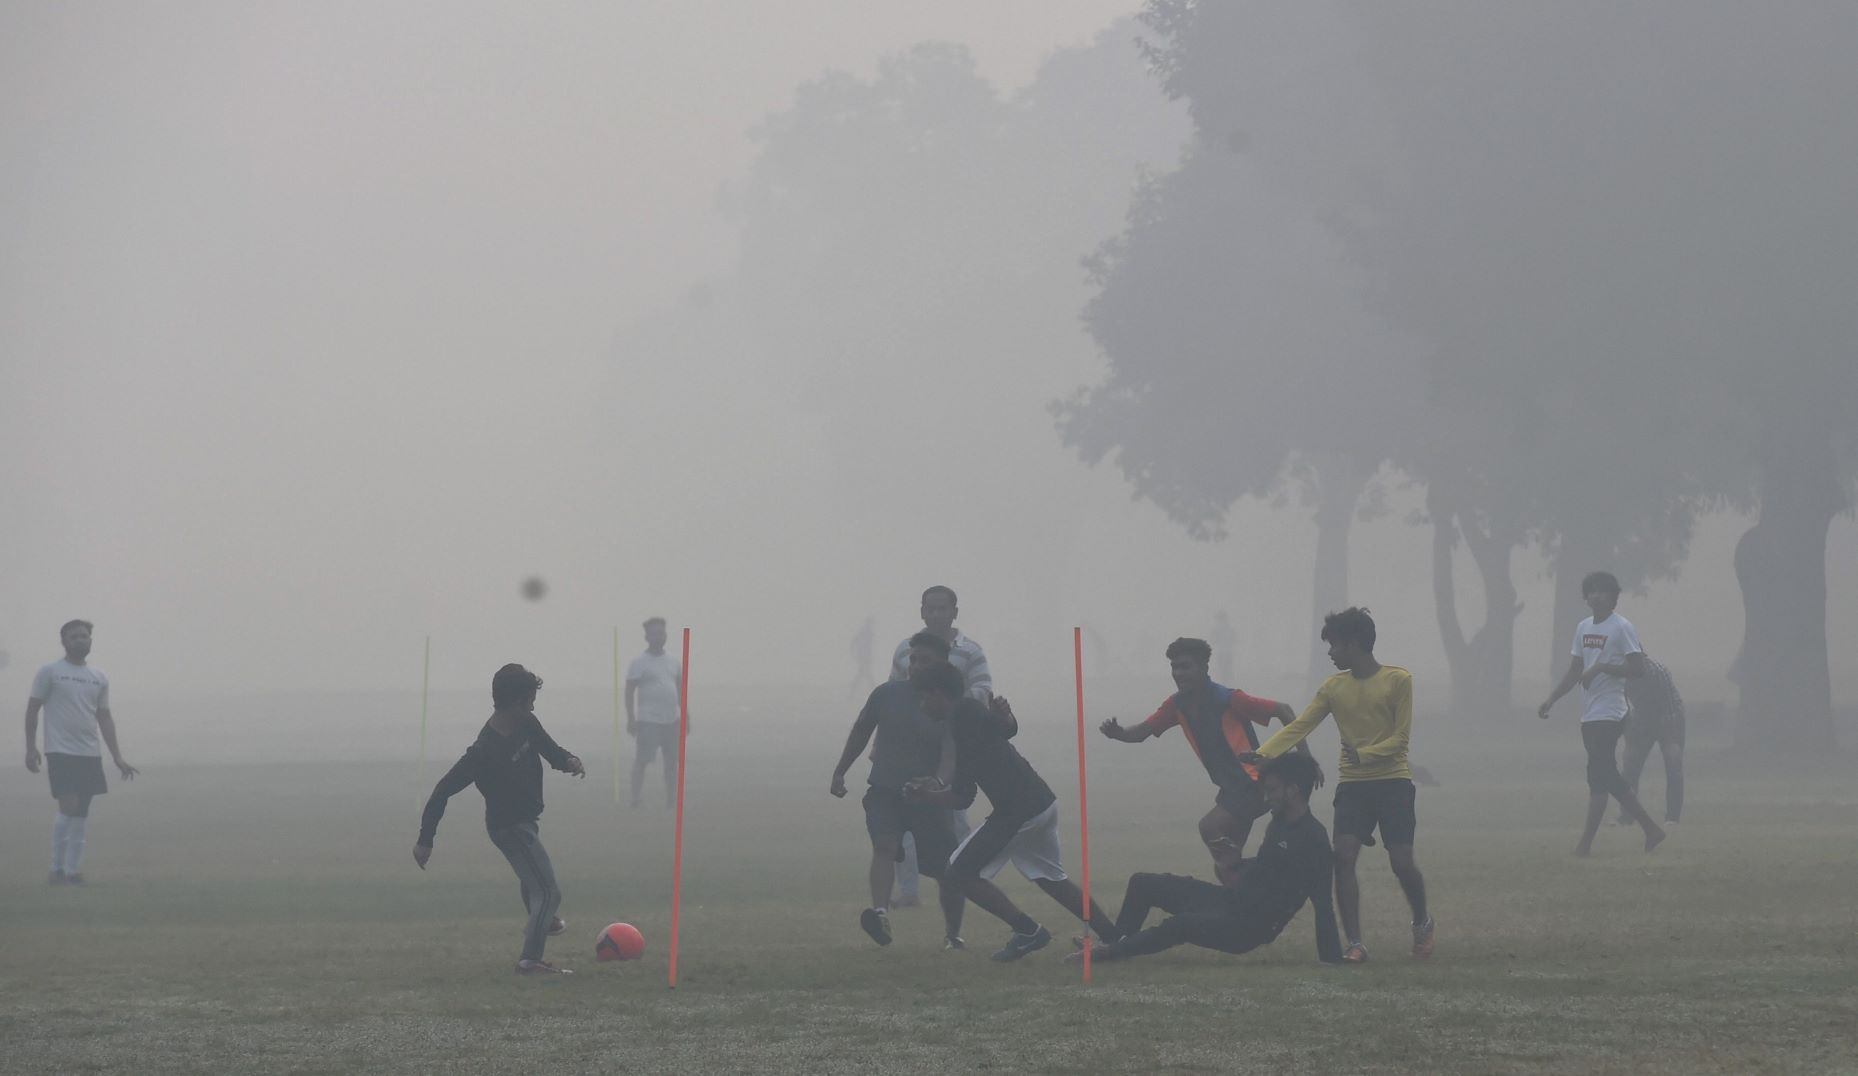 New Delhi: Parliament building engulfed in smog post Diwali celebrations, in New Delhi, Sunday, Nov. 15, 2020. Delhis air quality turned severe on Diwali with stubble burning accounting for 32 percent of the citys PM2.5 pollution and calm winds worsening the situation as they allowed the accumulation of pollutants. (PTI Photo/Kamal Singh)(PTI15-11-2020 000064B)